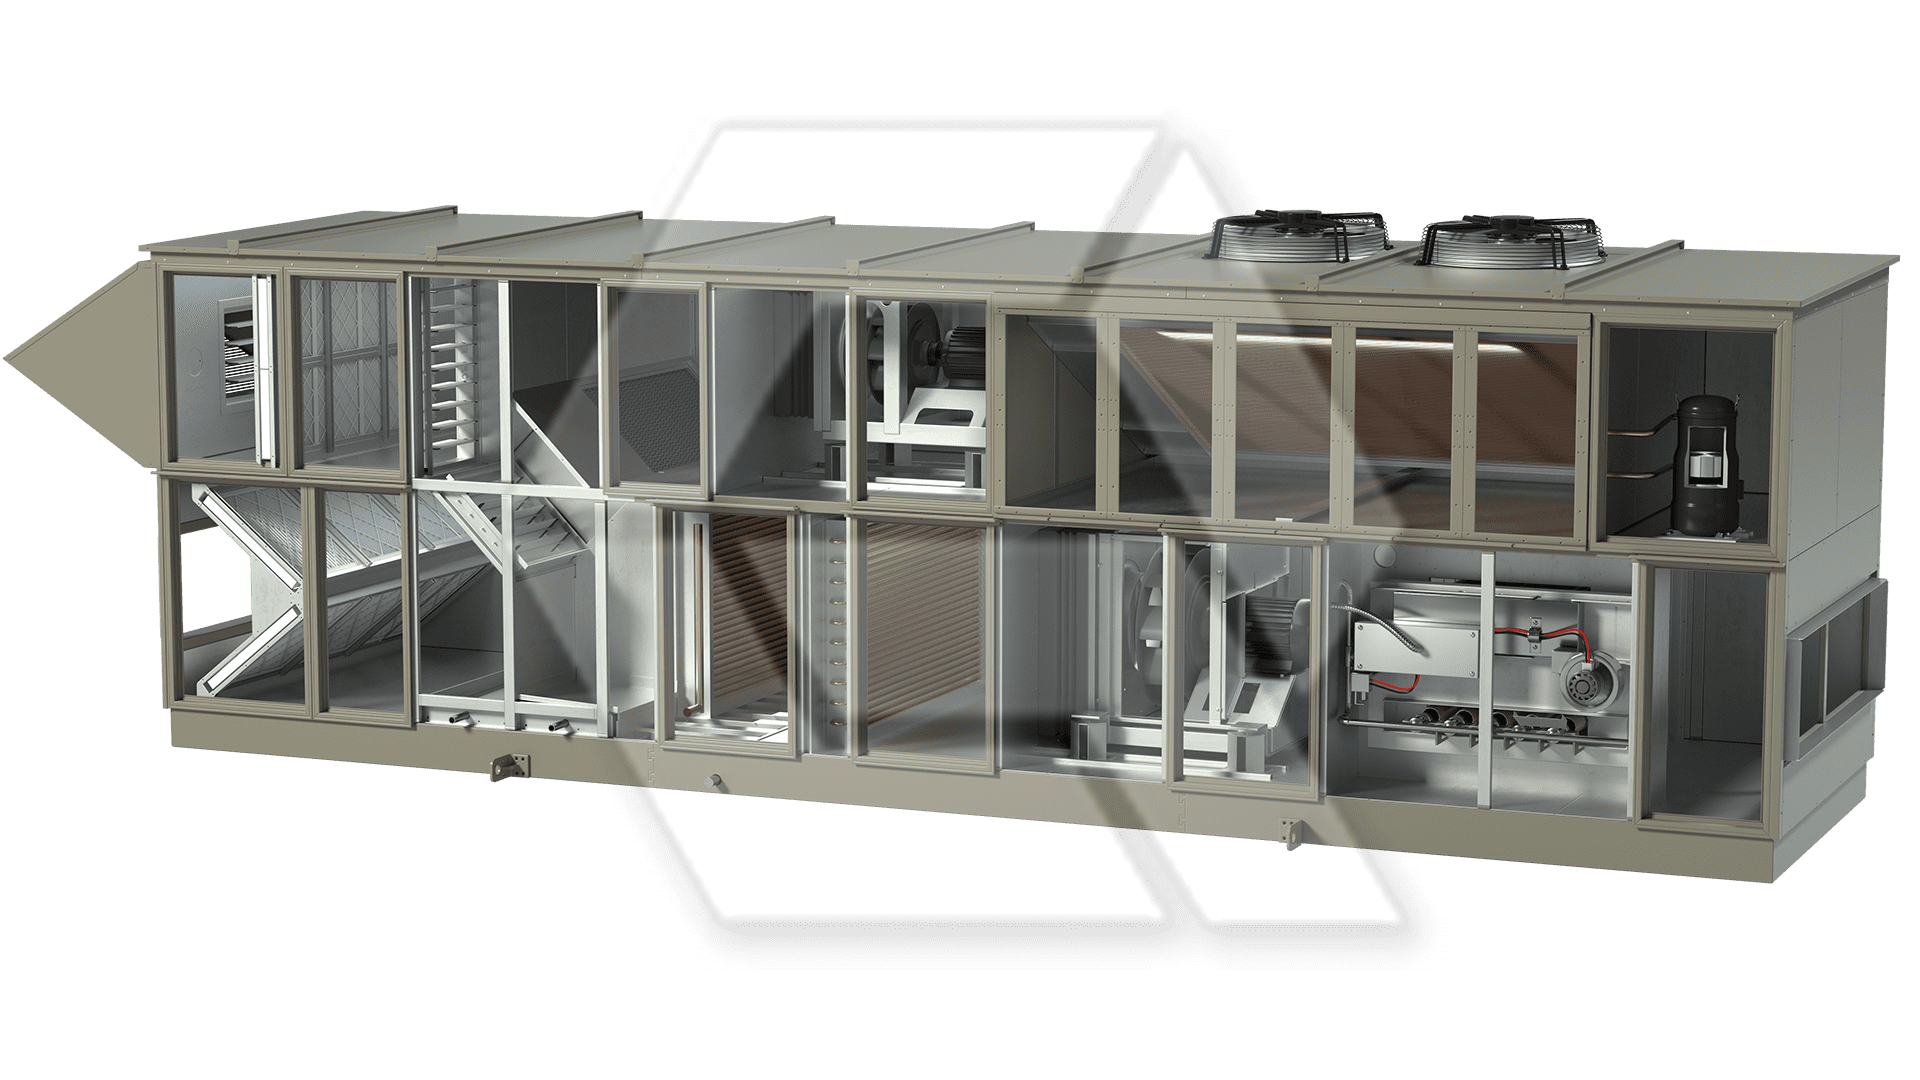 Innovent AHU 7879467-00020 - Pool Unit Open View